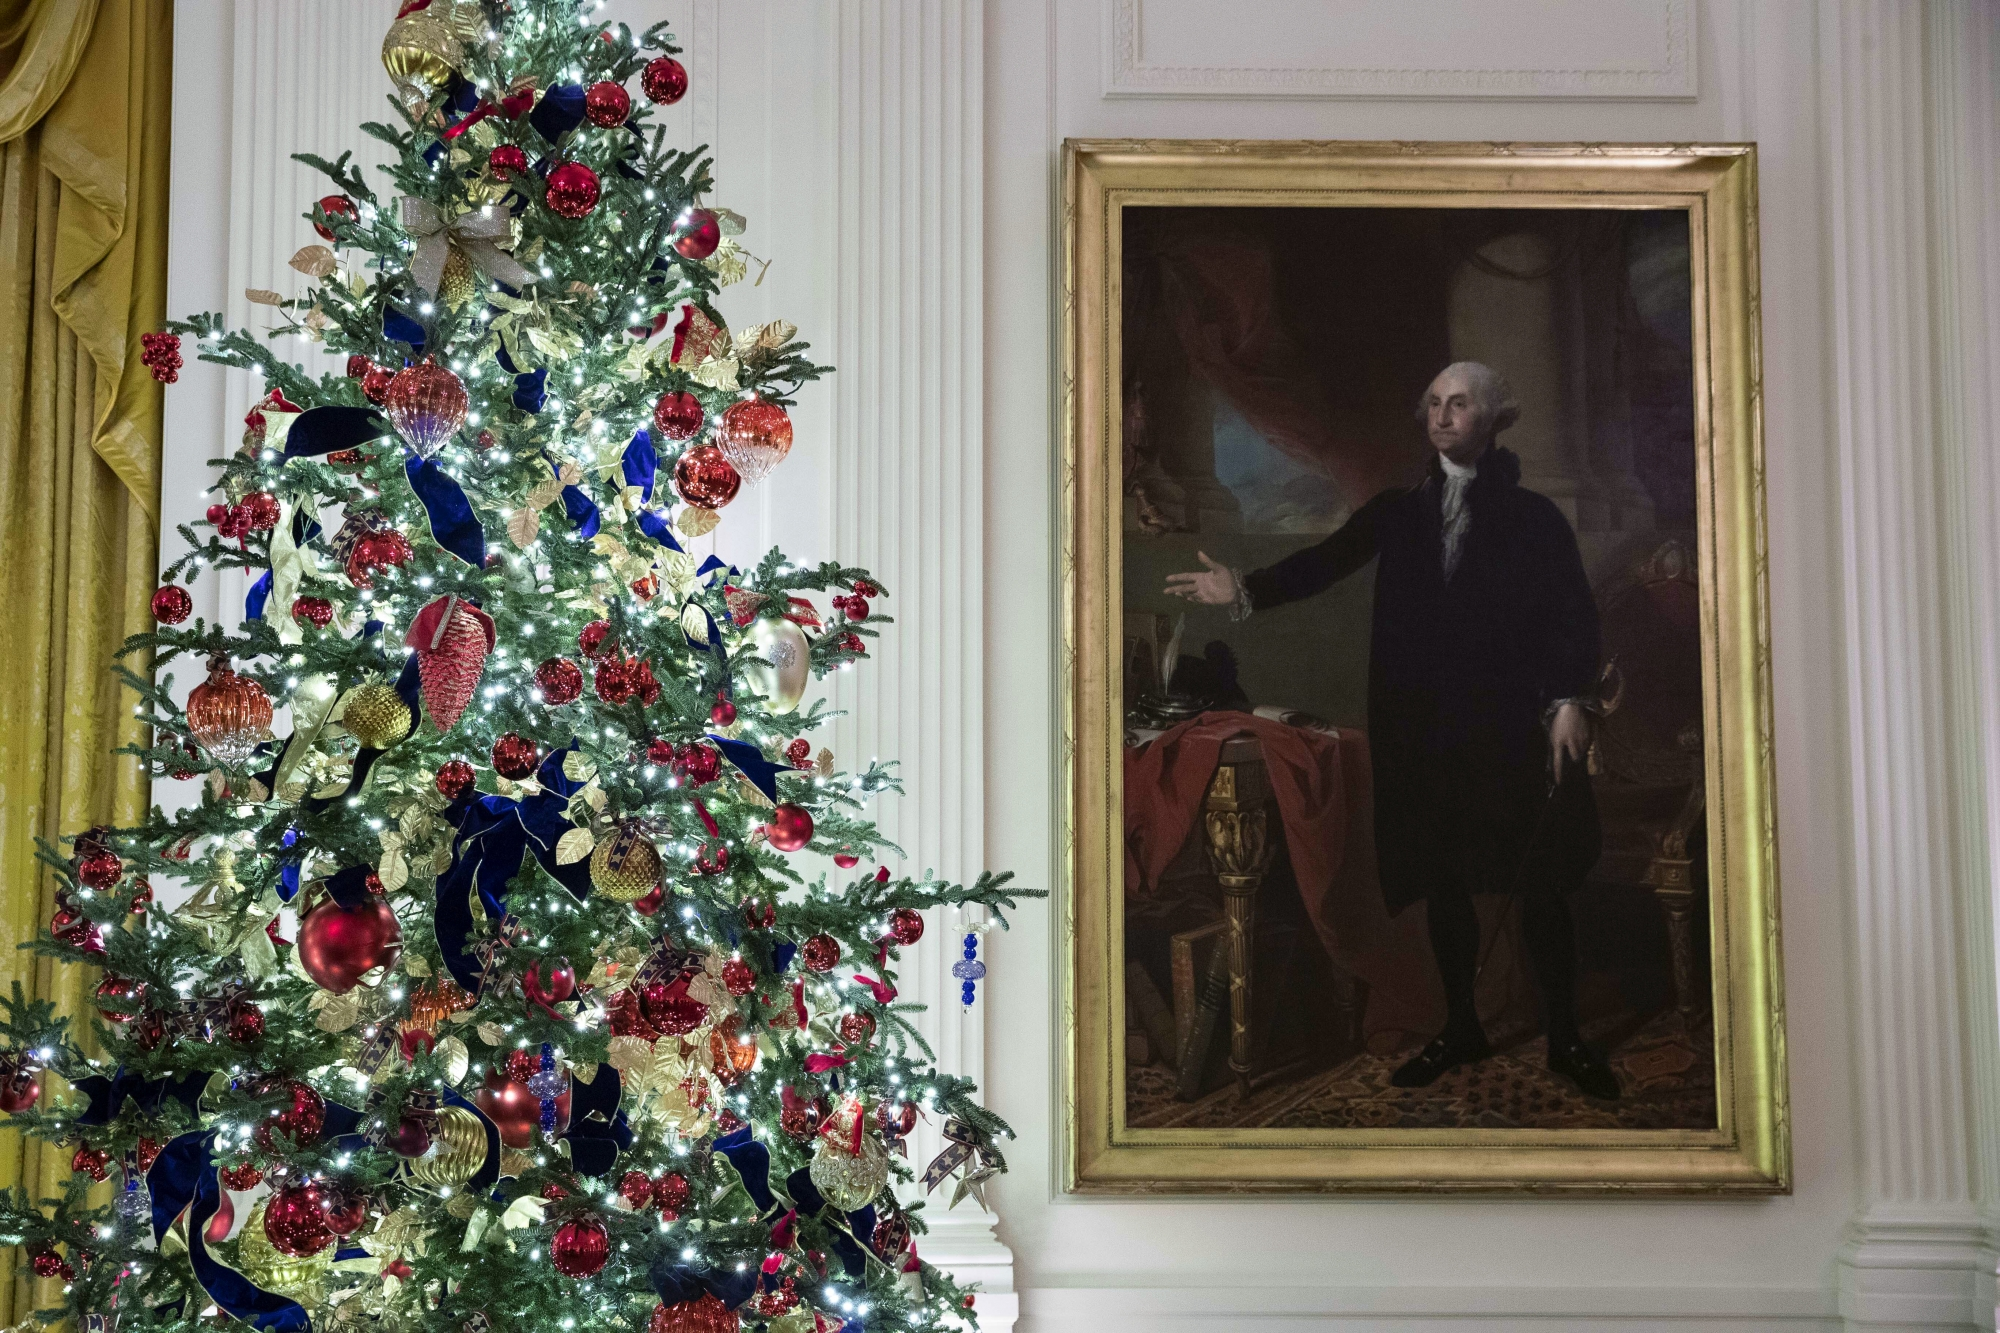 White House Christmas 2021 Ornament 2021 White House Christmas Ornament Unveiled Wtop